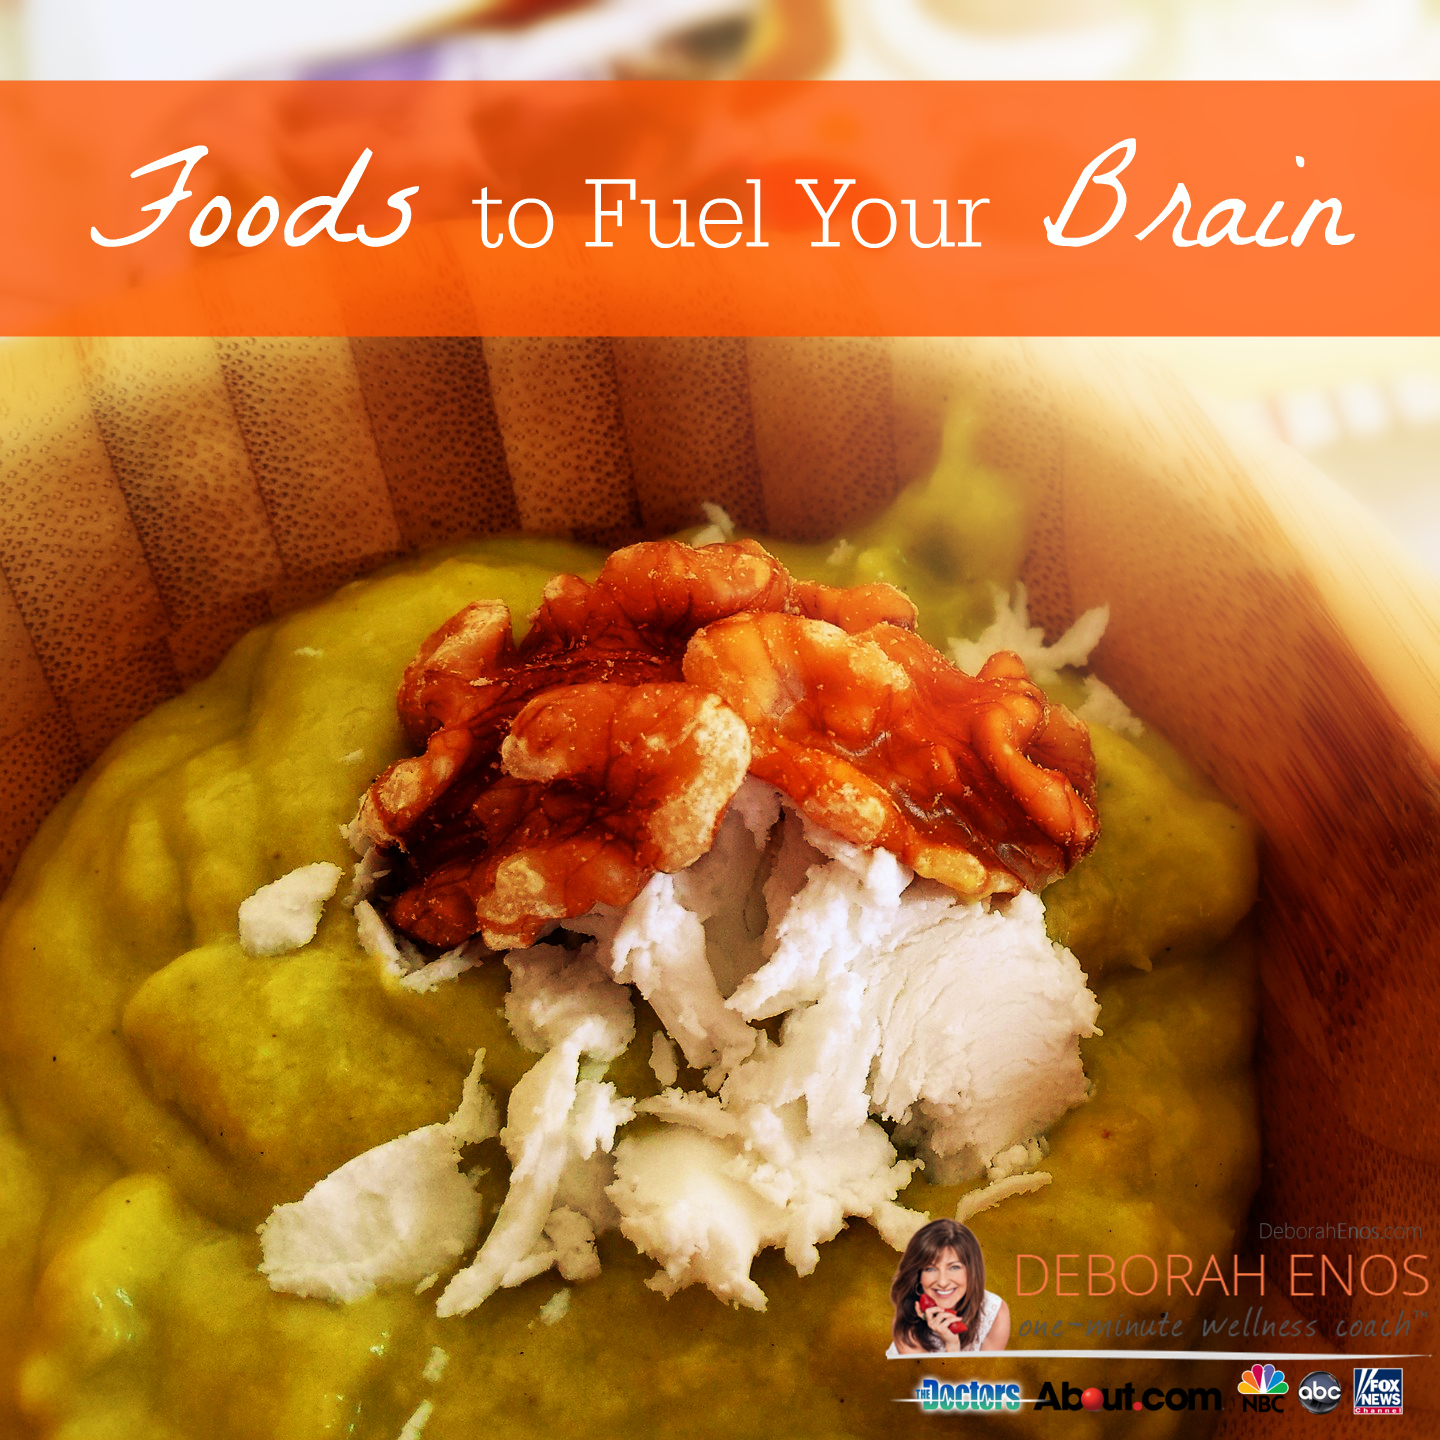 foods to fuel your brain deborah enos